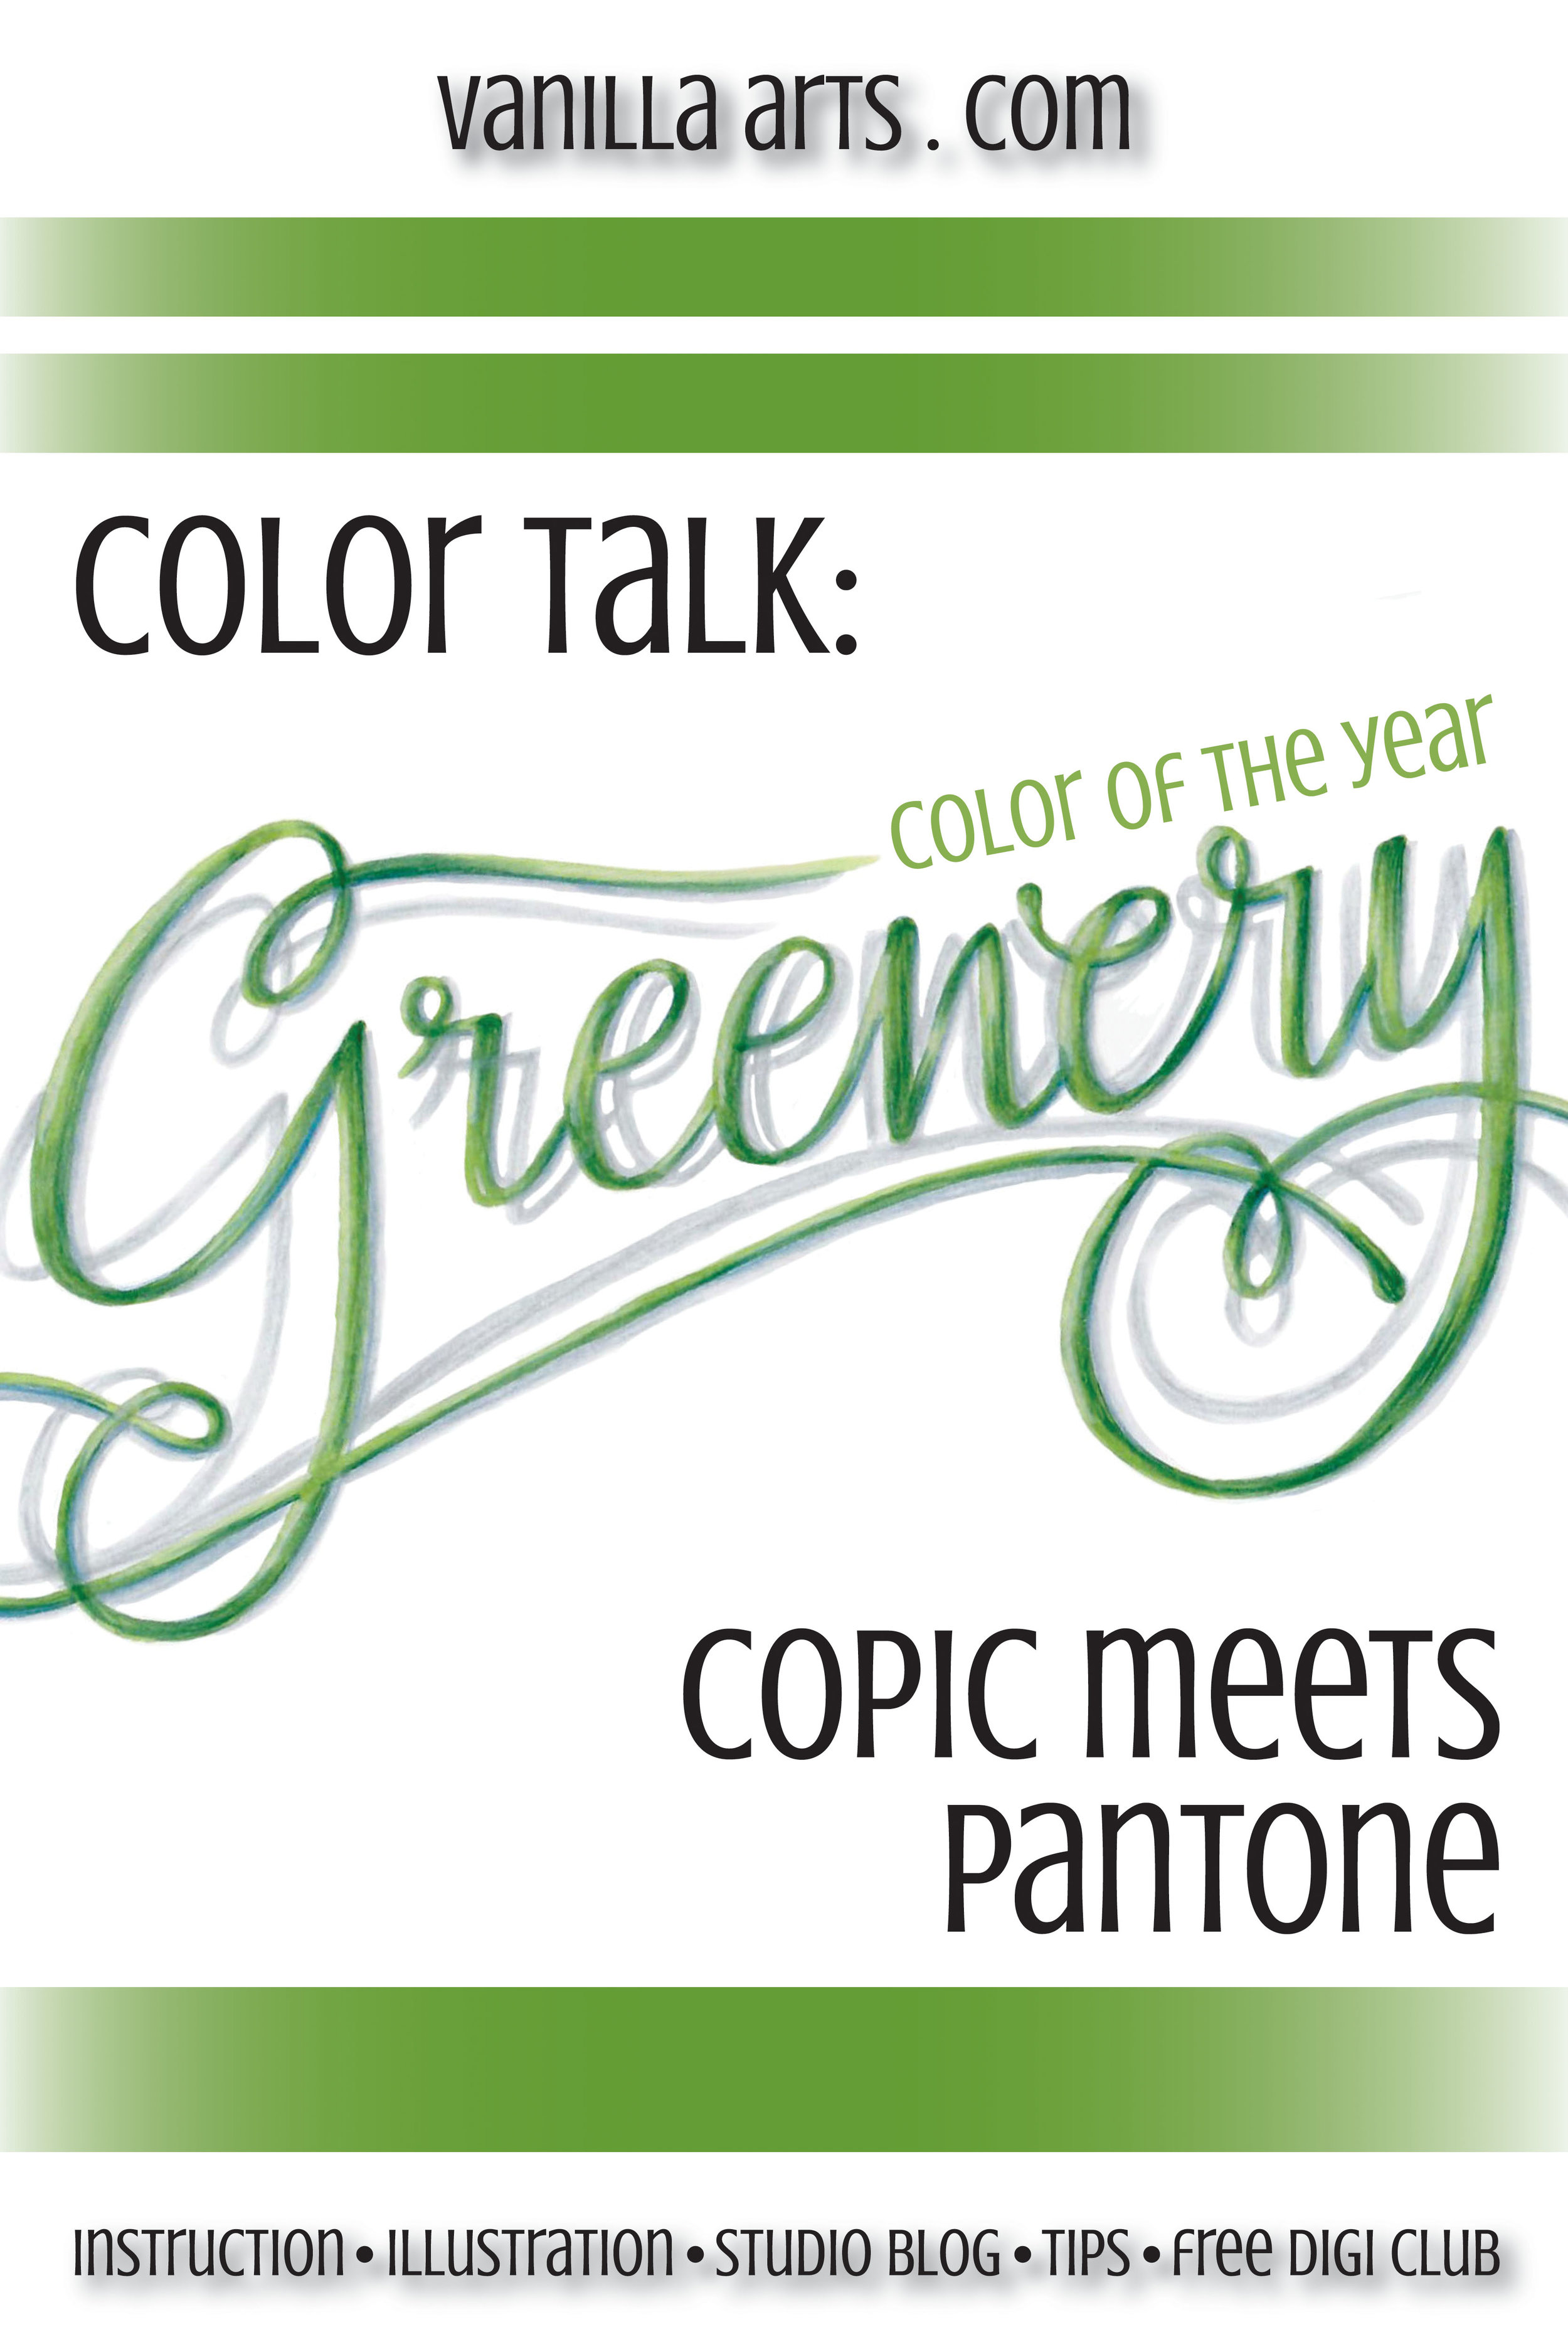 """Pantone's Color of the Year, """"Greenery"""" meets Copic Markers.   VanillaArts.com"""